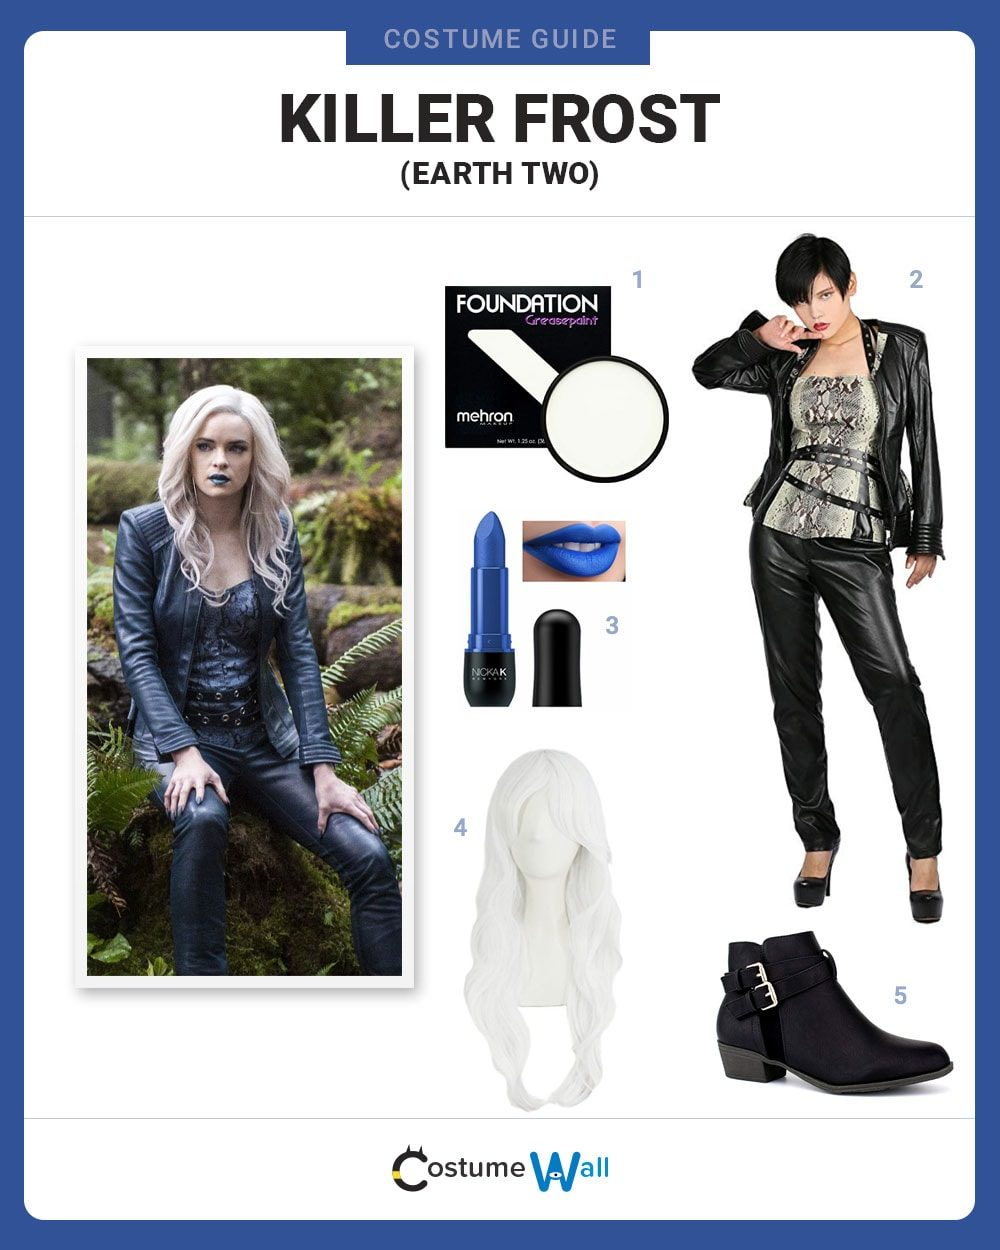 Killer Frost (Earth Two) Costume Guide